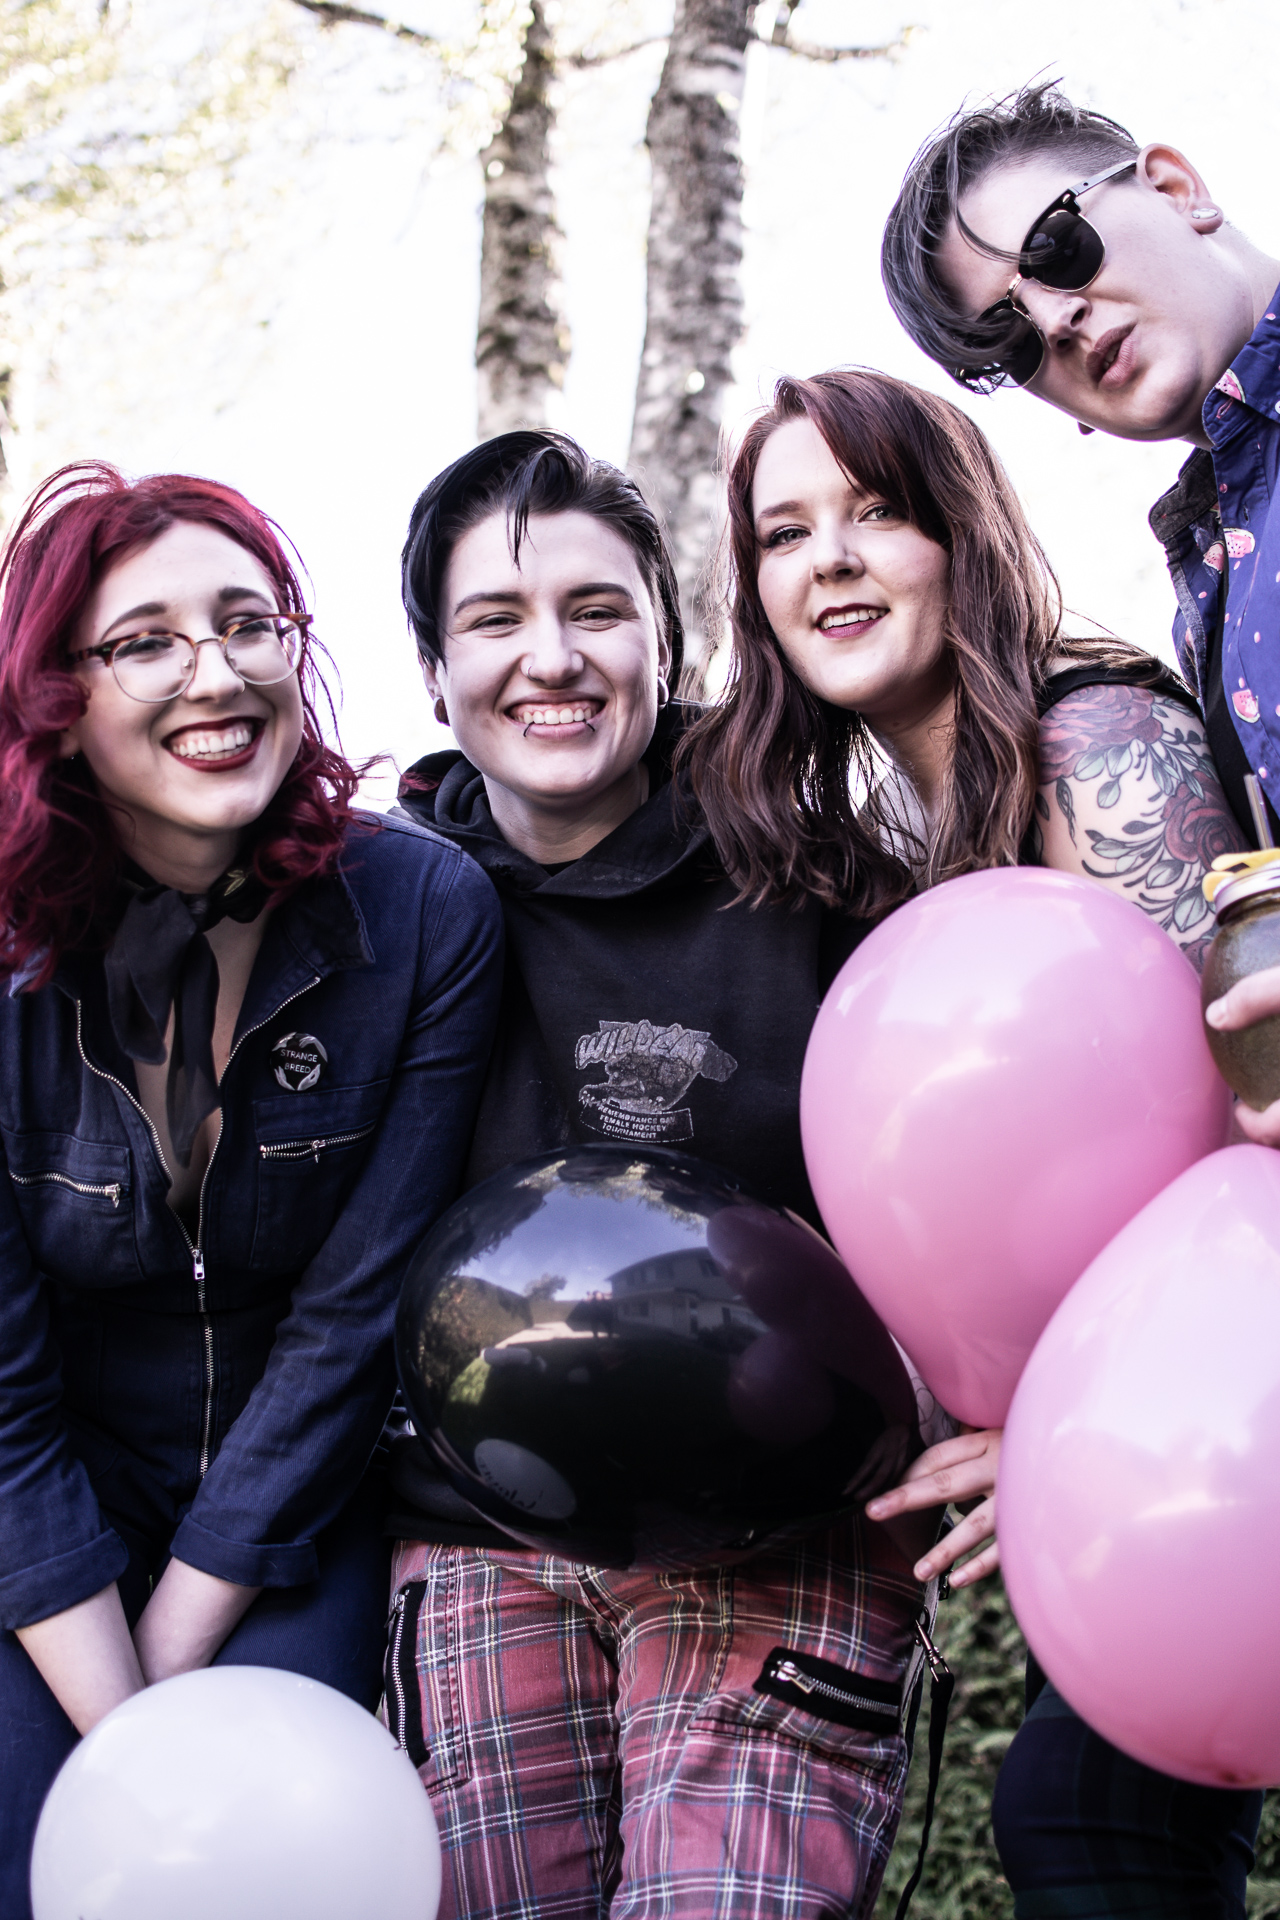 strange breed - 4 piece, queer, alt-garage rock band based out of Vancouver, BC.Sounding like every 90's riot grrrl fans' feminist wet dream, with an unexpected modern rock twist. Safe spaces, inclusivity, good times and great music is what these babes are all about.@strangebreedband